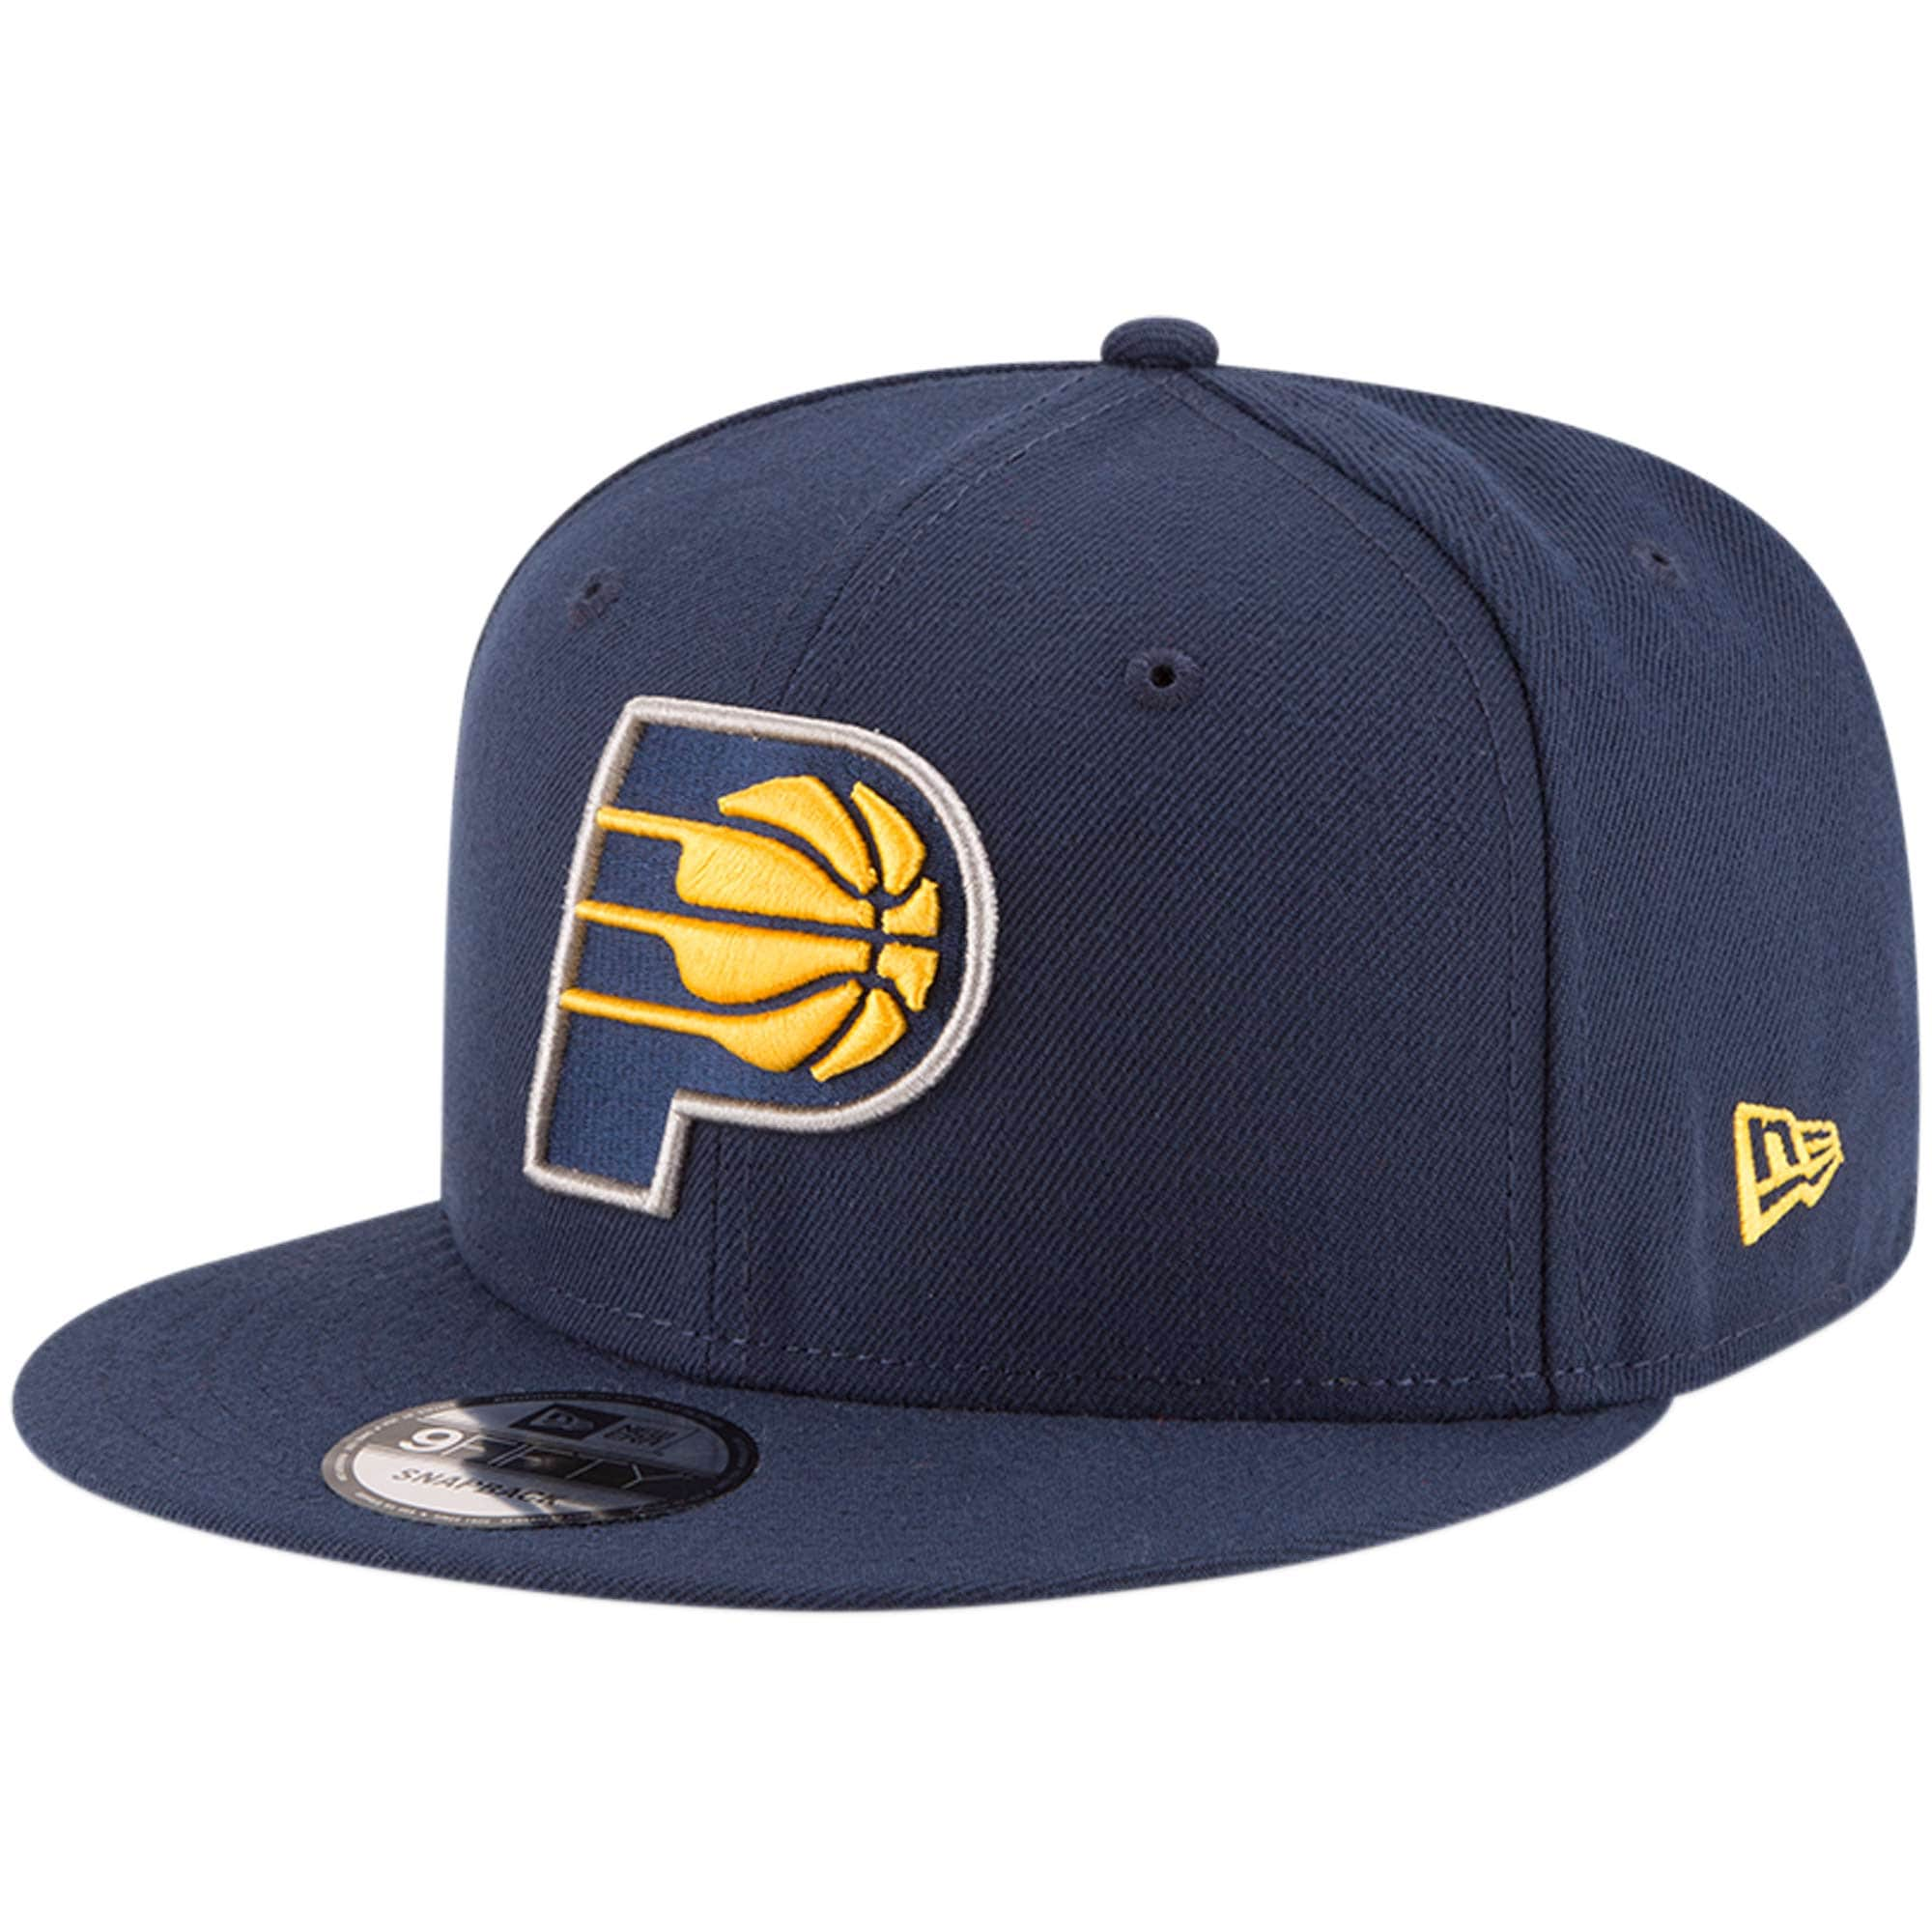 Indiana Pacers New Era Official Team Color 9FIFTY Adjustable Snapback Hat - Navy